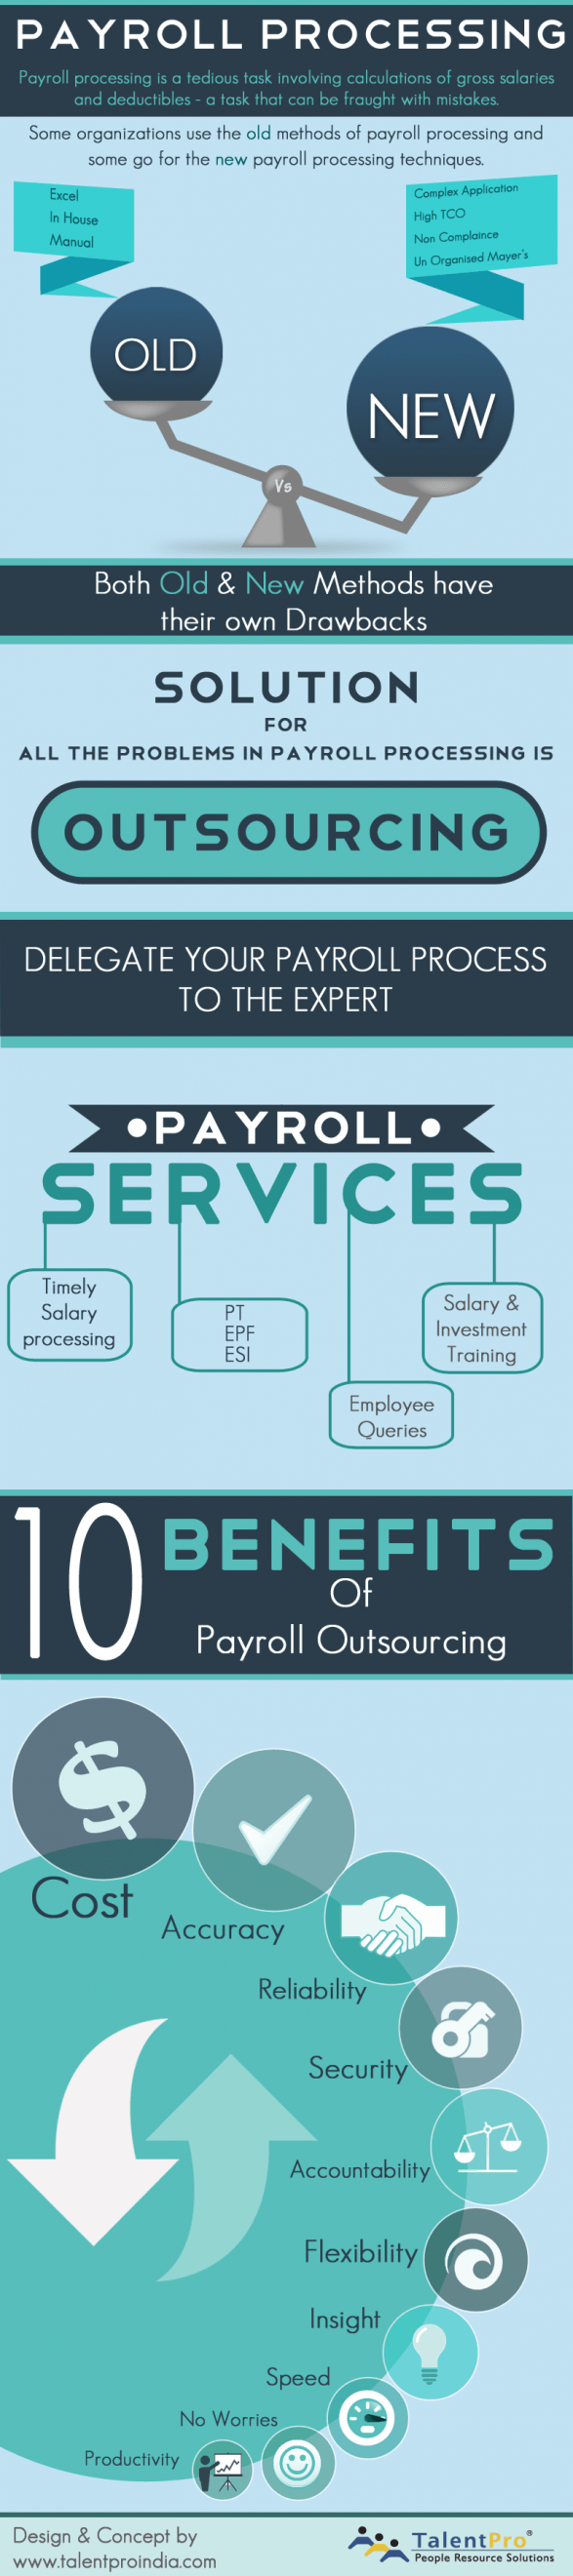 Payroll Process - Outsourcing & Benefits